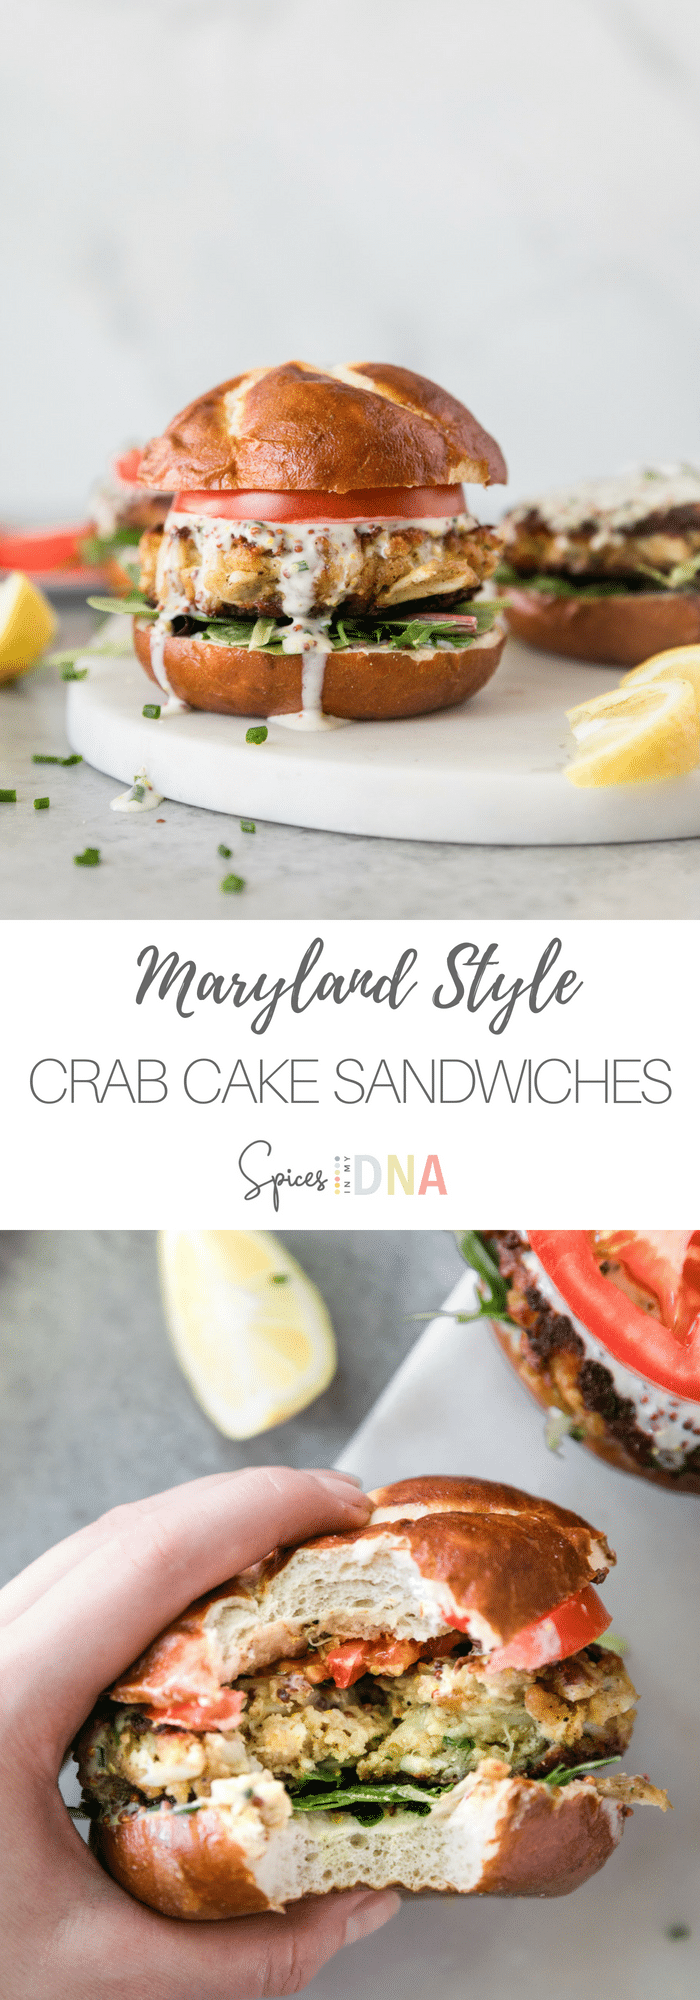 These Maryland Style Crab Cake Sandwiches with Chive Honey Mustard are made with jumbo lump crabmeat, hardly any filler, sliced tomato, and a zesty, 3-ingredient chive honey mustard sauce! They're fabulous served with lettuce, tomato, a lemon wedge, and an extra sprinkle of chives! #crabcake #maryland #sandwich